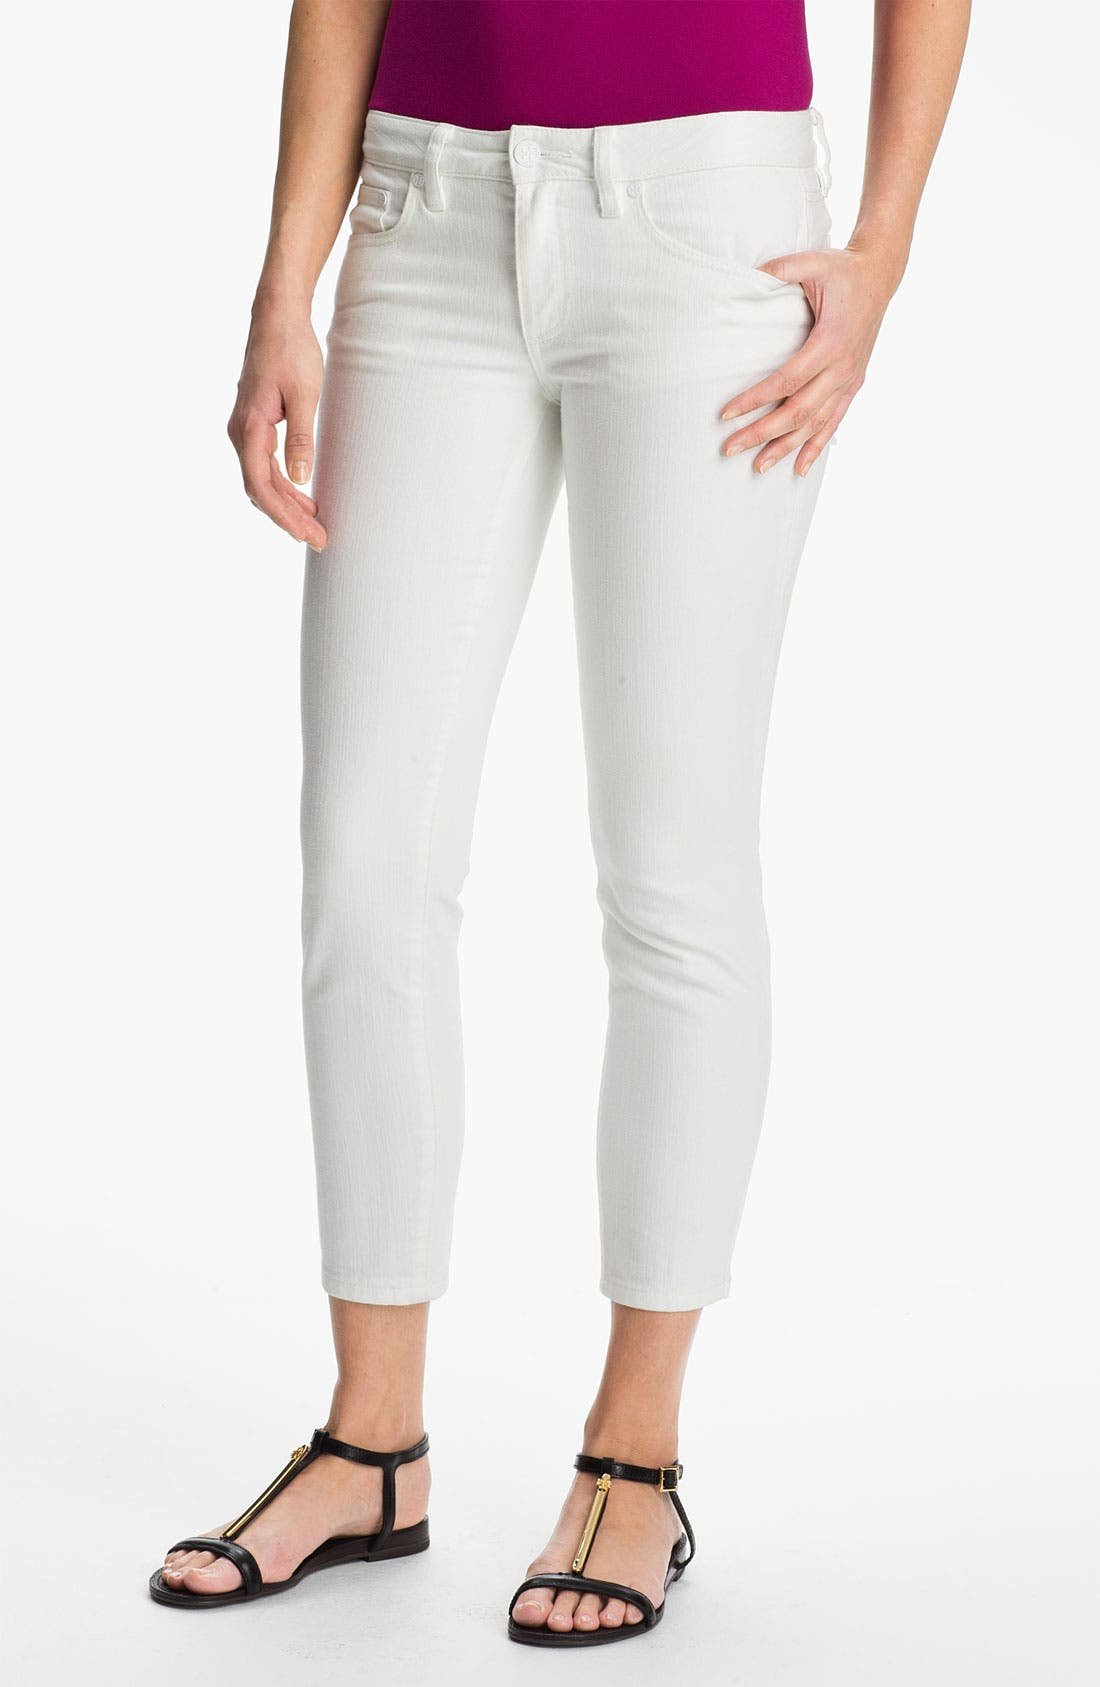 Alternate Image 1 Selected - Tory Burch 'Alexa' Crop Skinny Stretch Jeans (Stone)